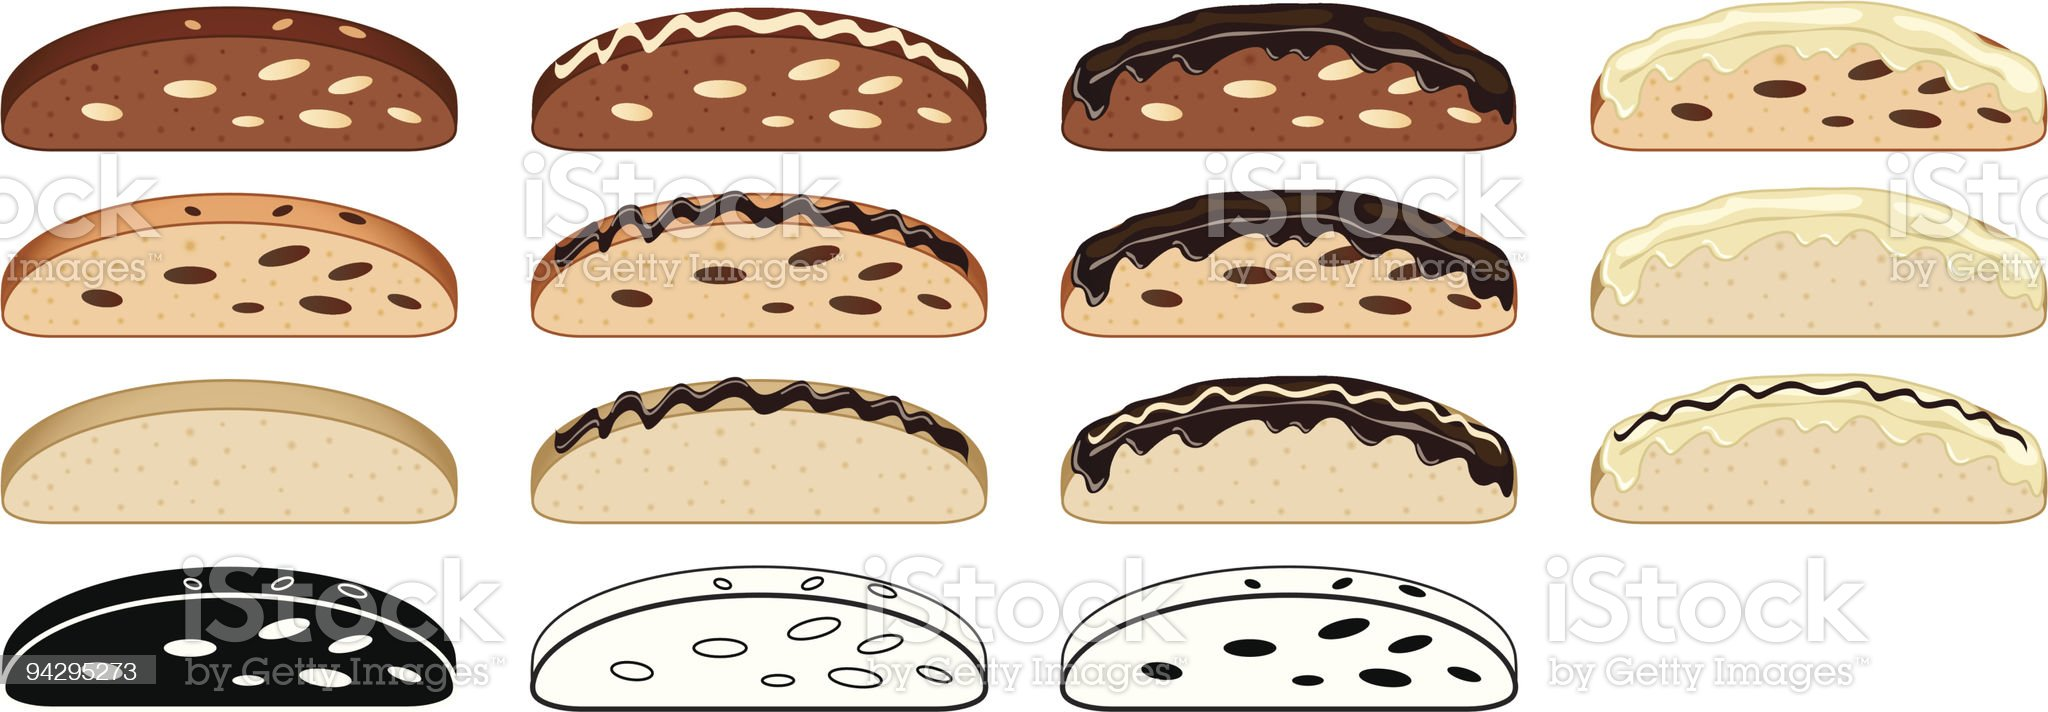 Biscotti collection royalty-free stock vector art